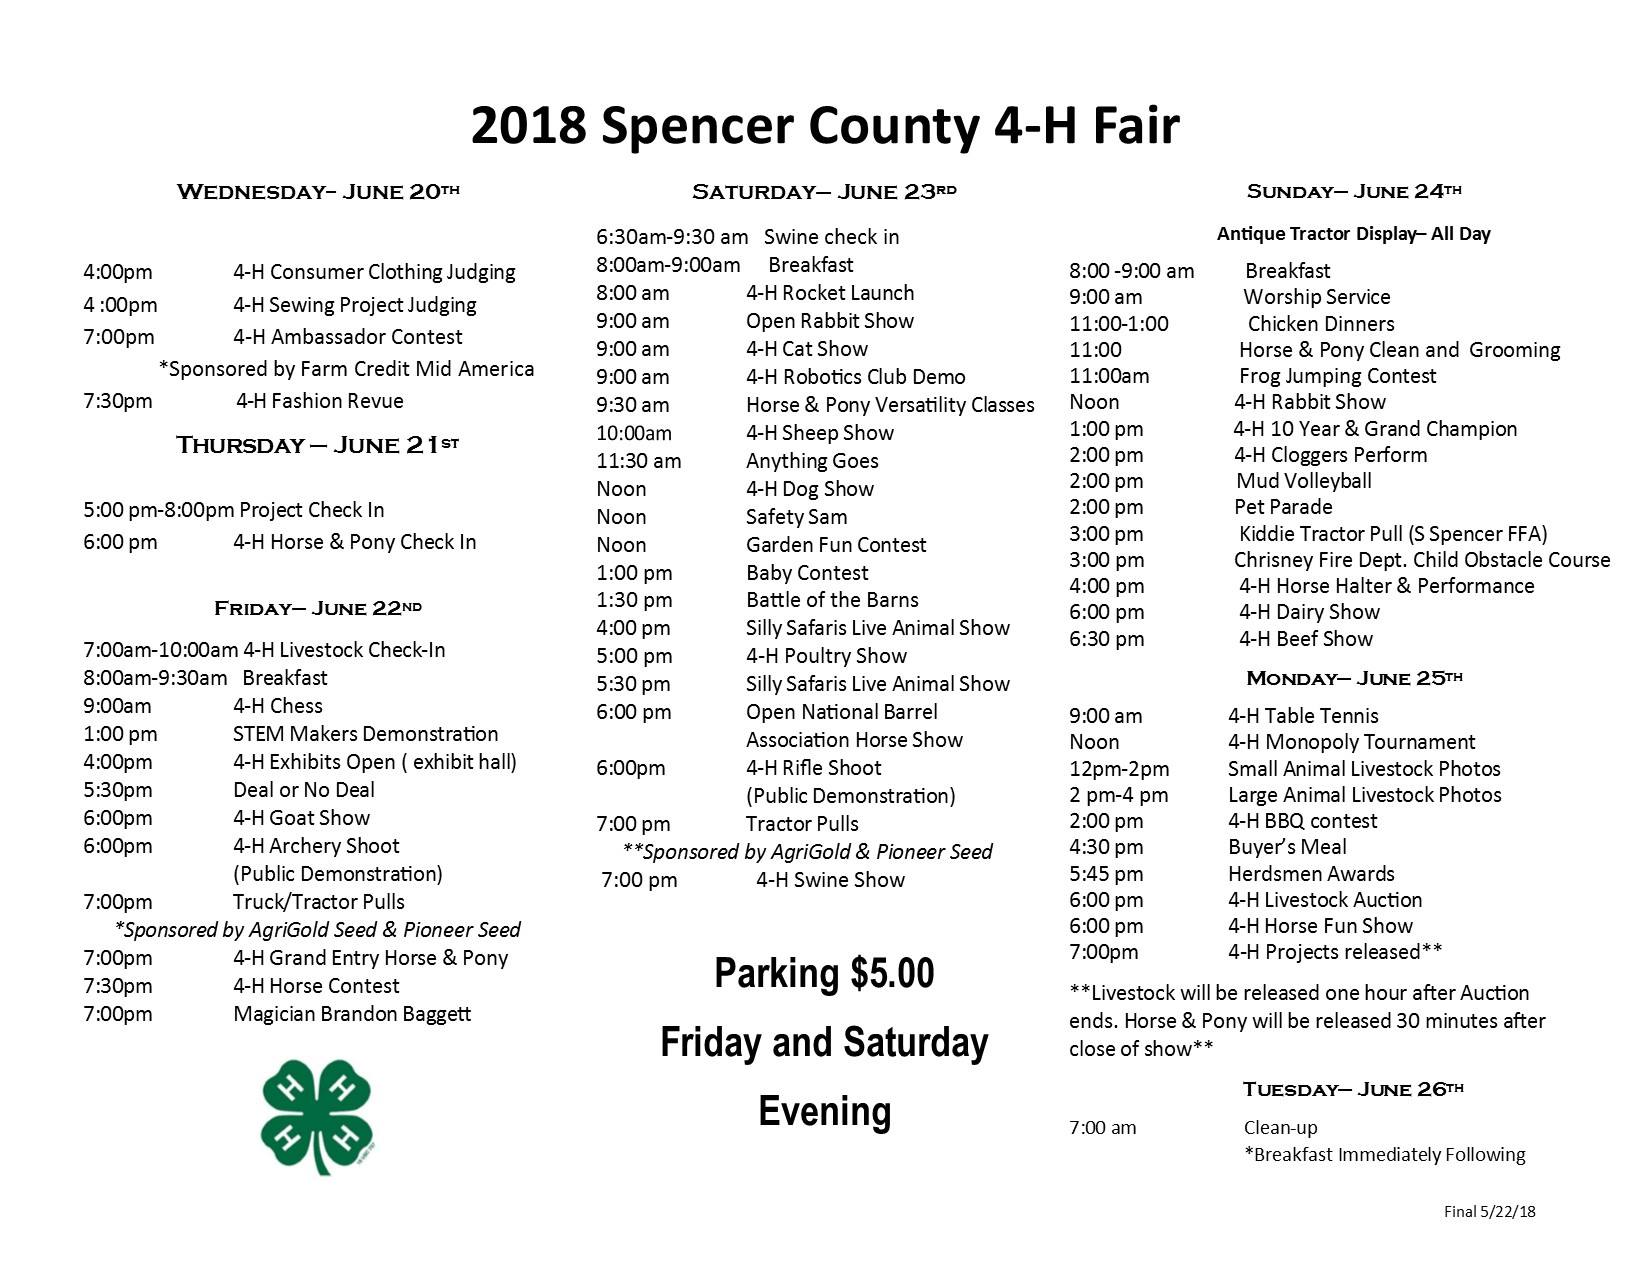 2018 Spencer County 4-H Fair in Chrisney, Indiana